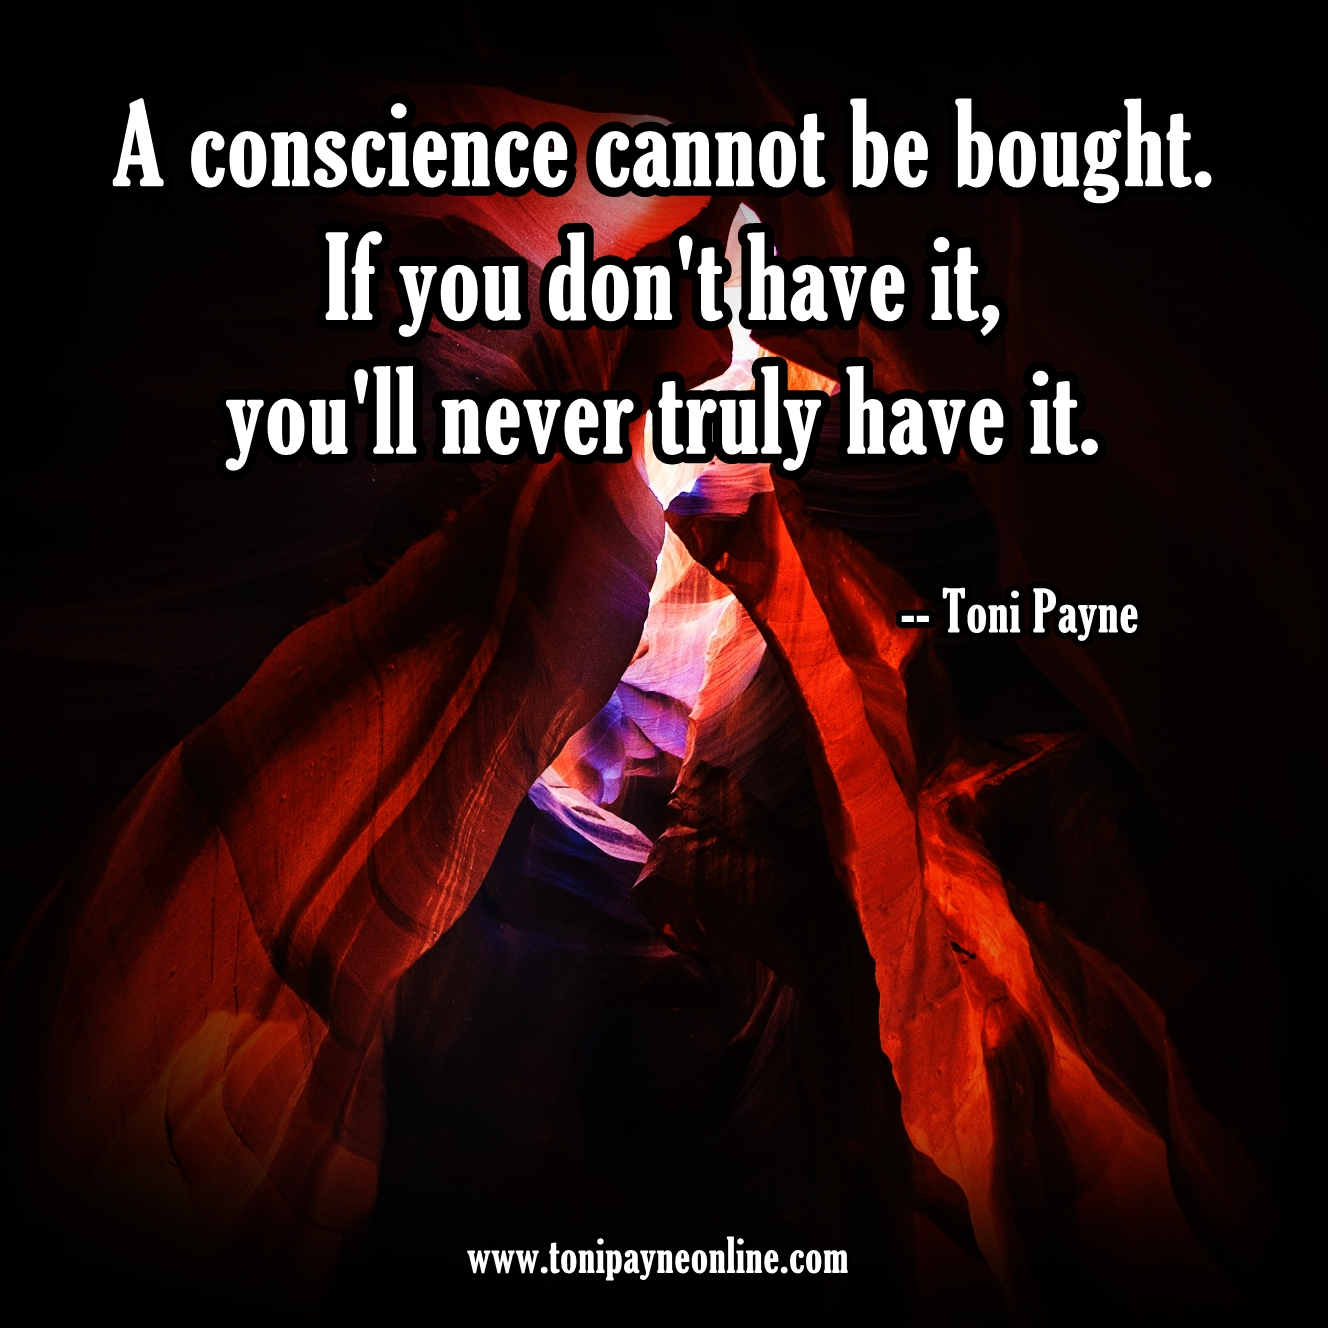 Quote about Conscience - A conscience cannot be